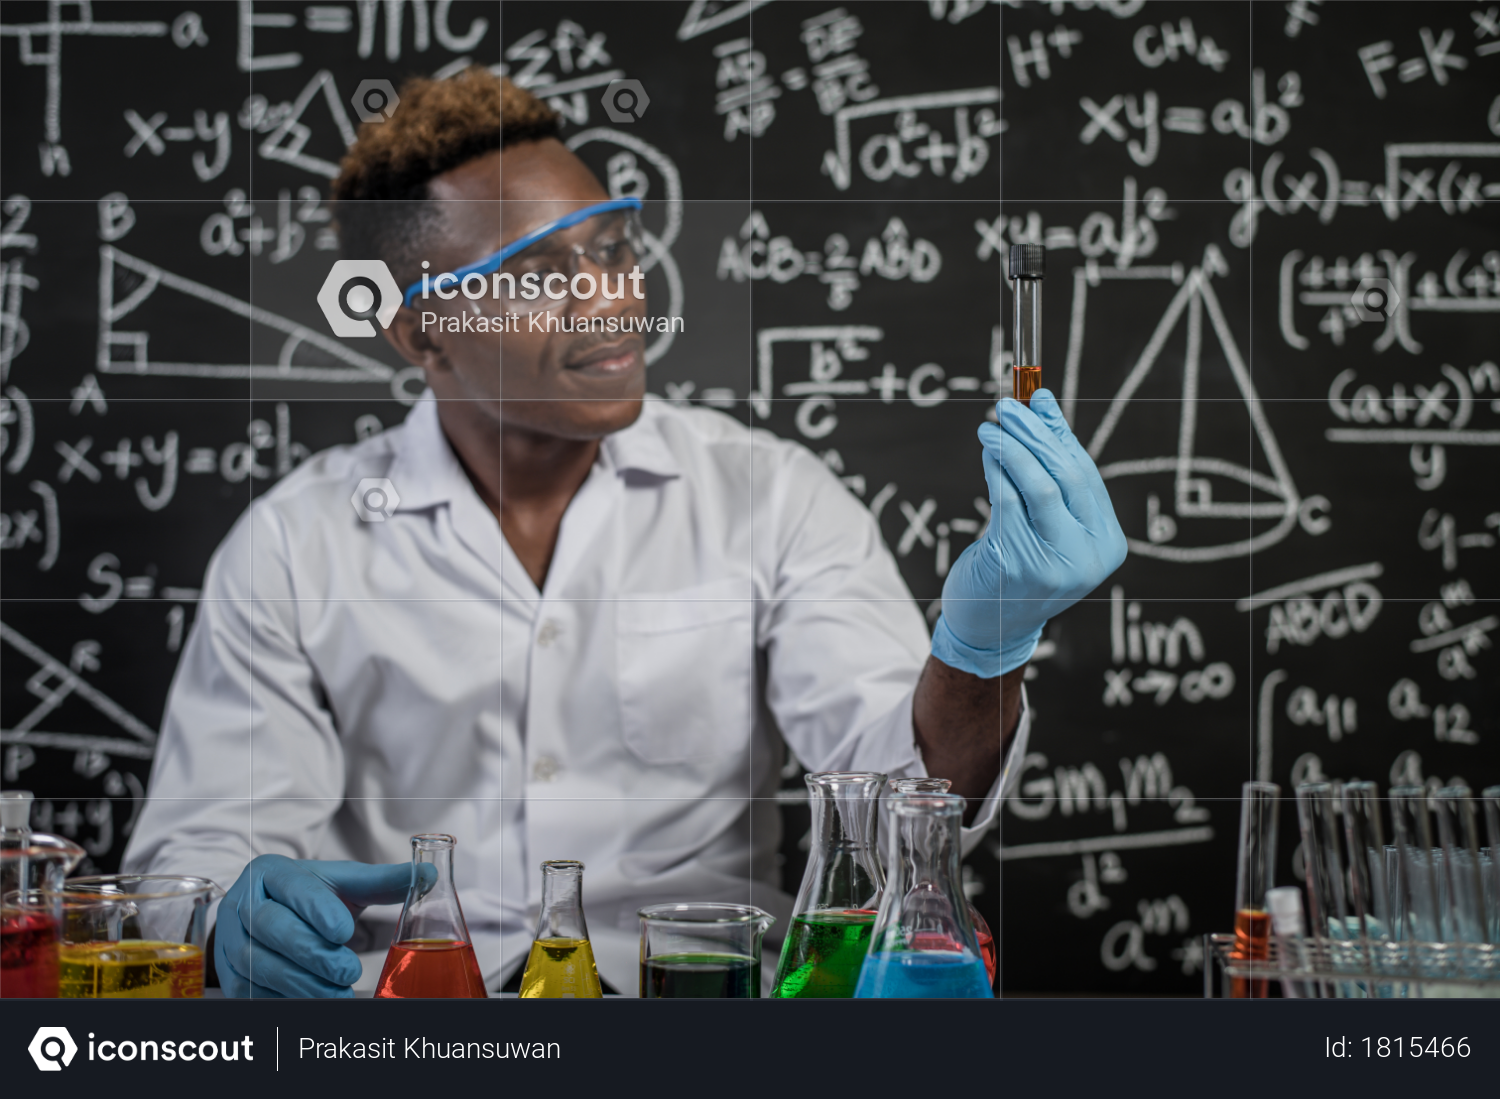 Premium Scientists Look At The Orange Chemicals In Glass At The Laboratory Photo Download In Png Jpg Format